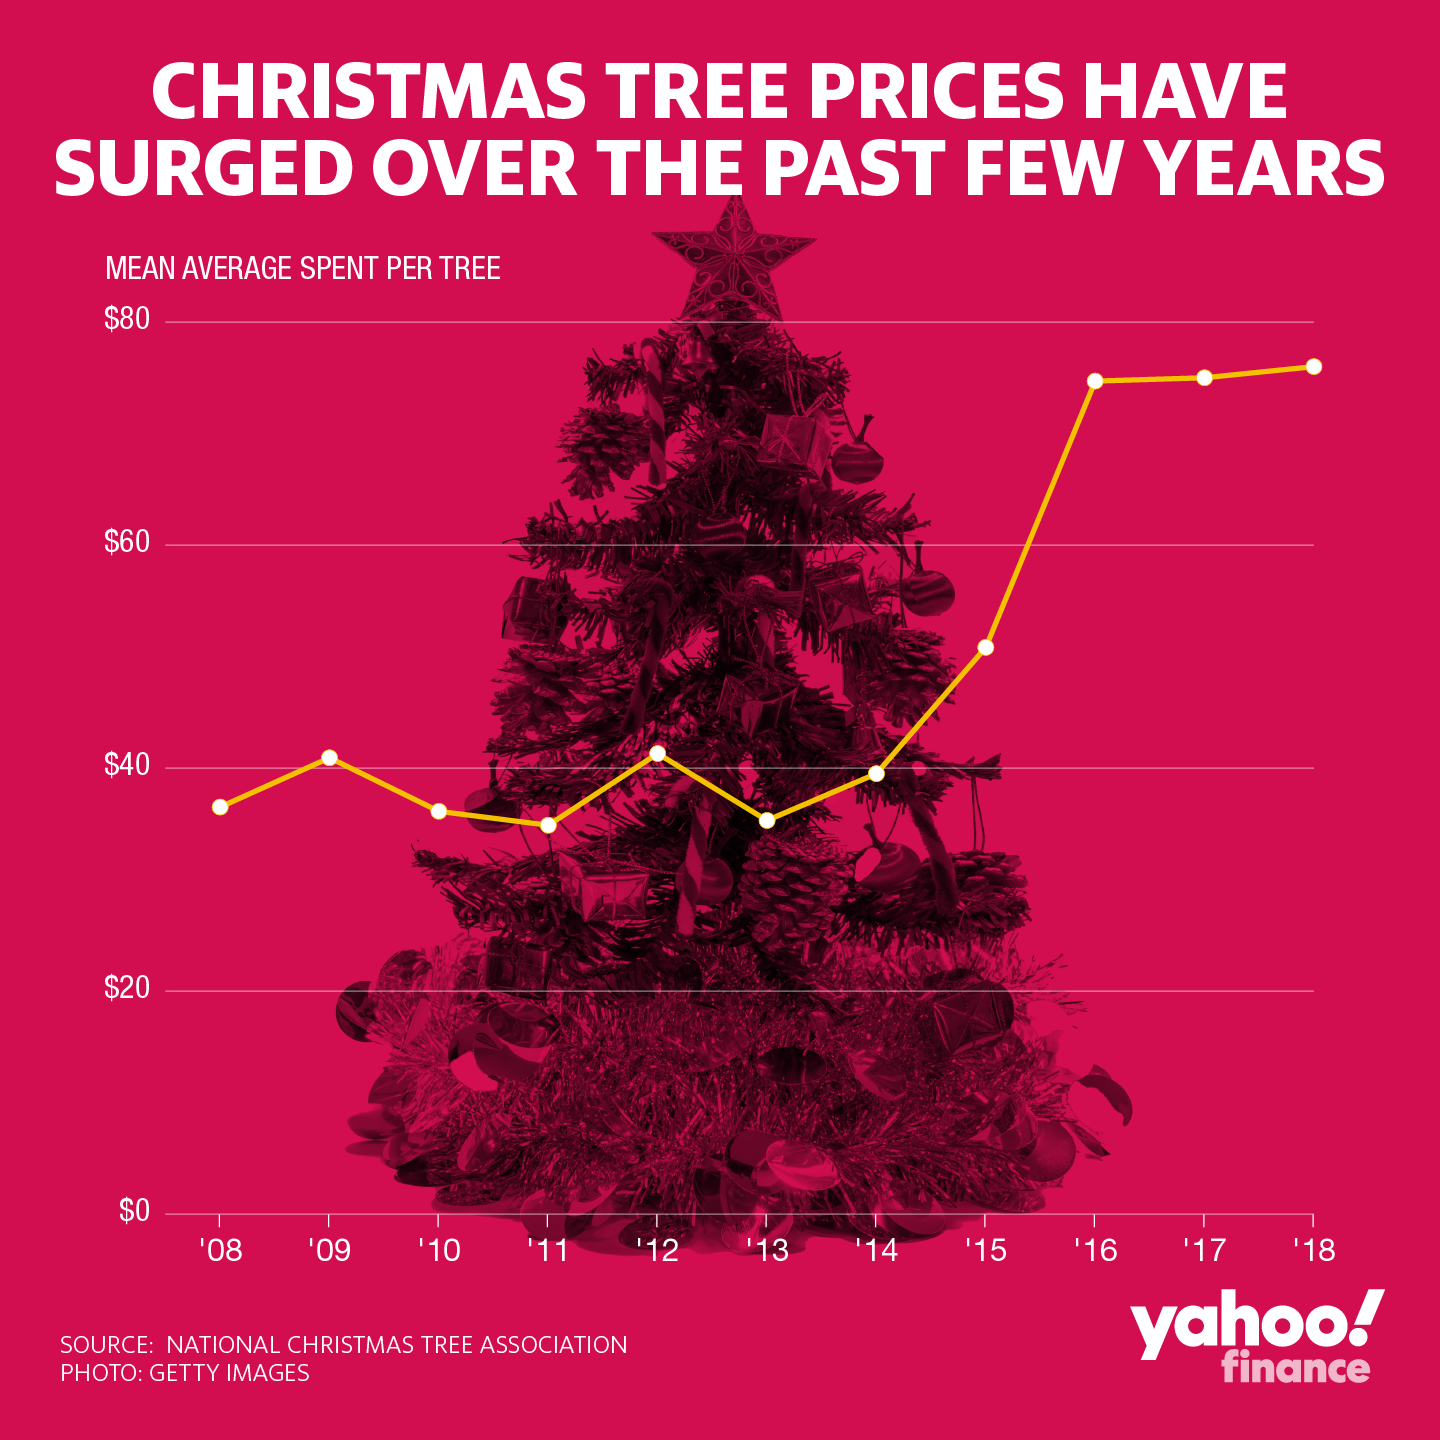 Christmas trees are getting more expensive